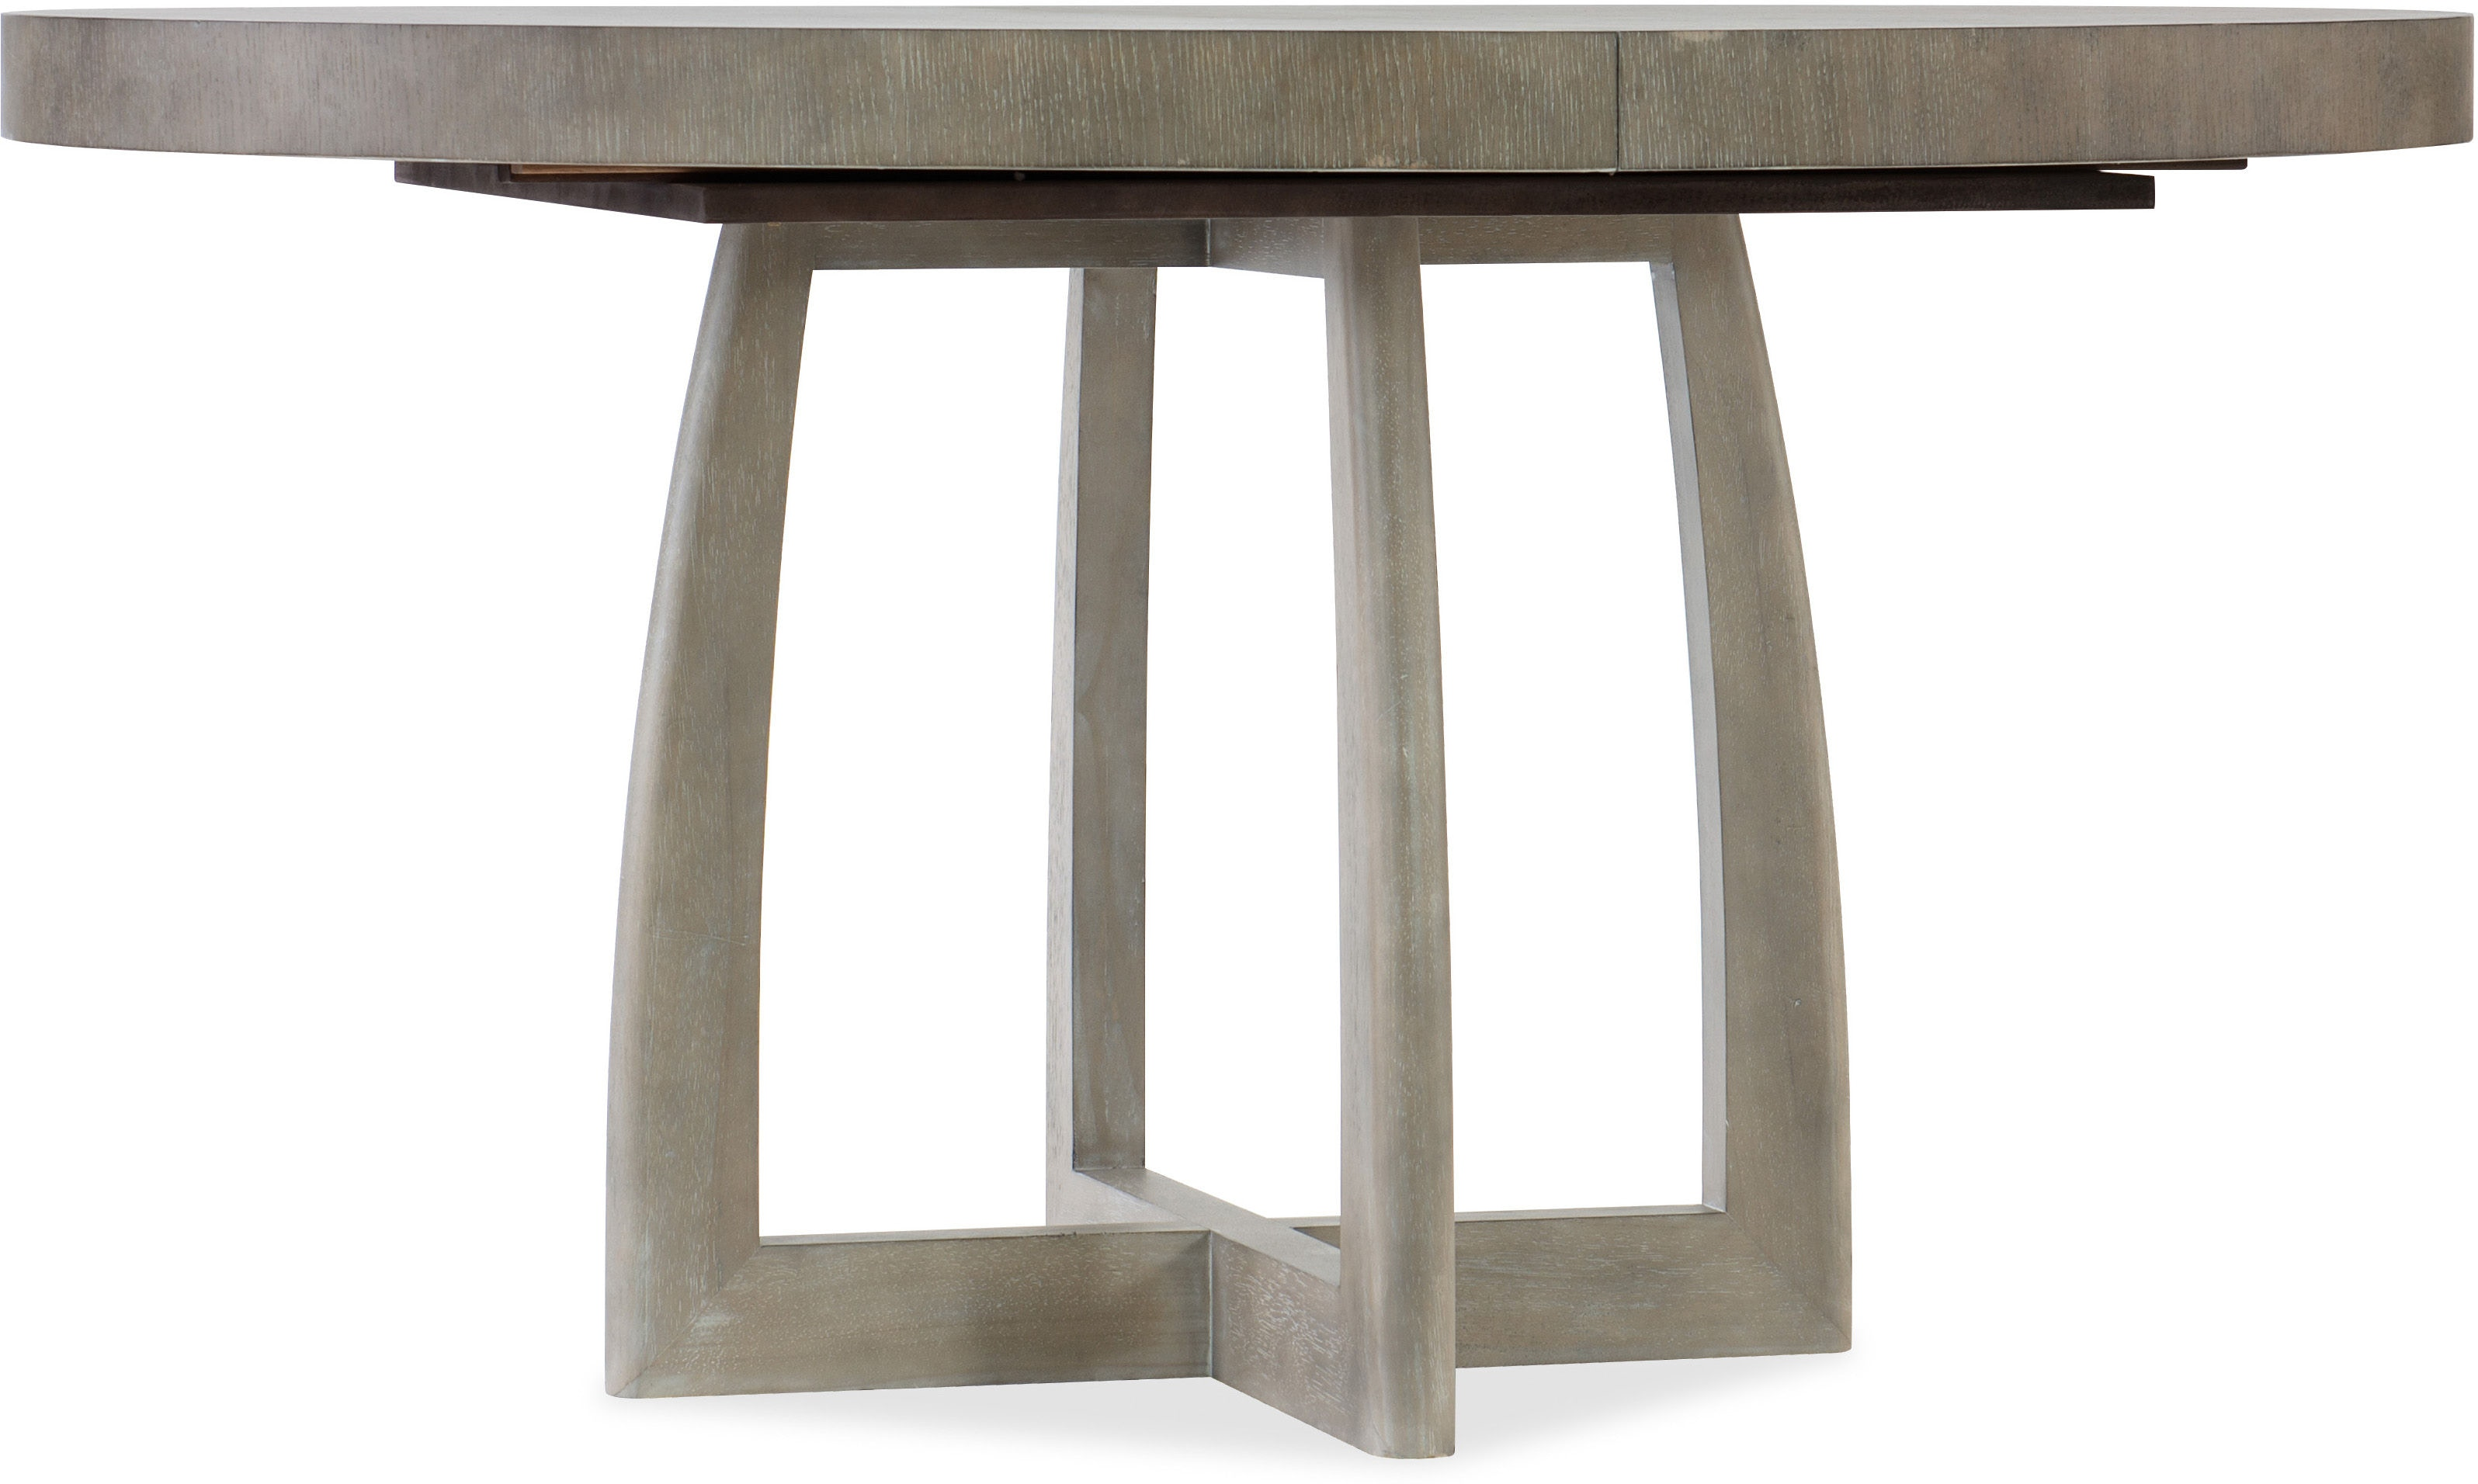 Affinity 48in Round Pedestal Dining Table hooker furniture 6050-75203-